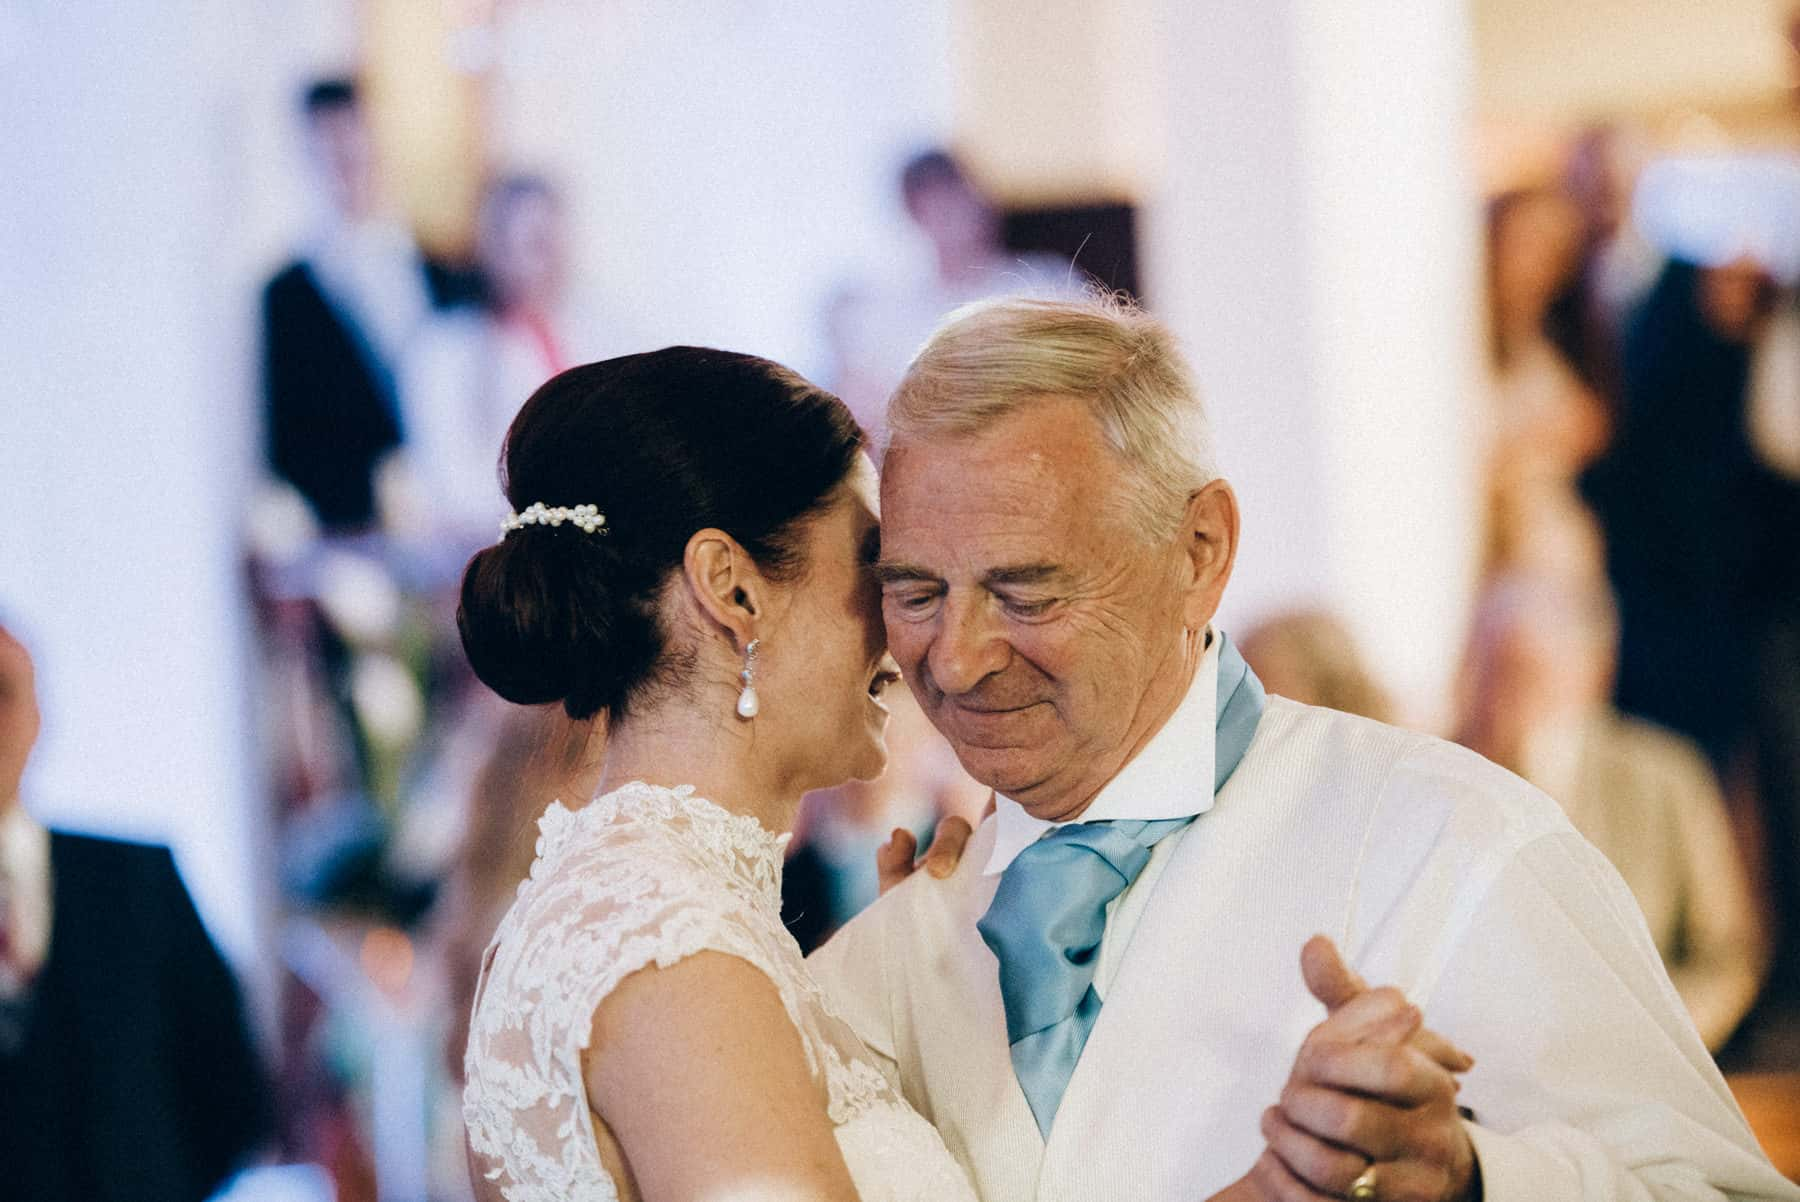 wedding photography bride and father dancing (1 of 1)